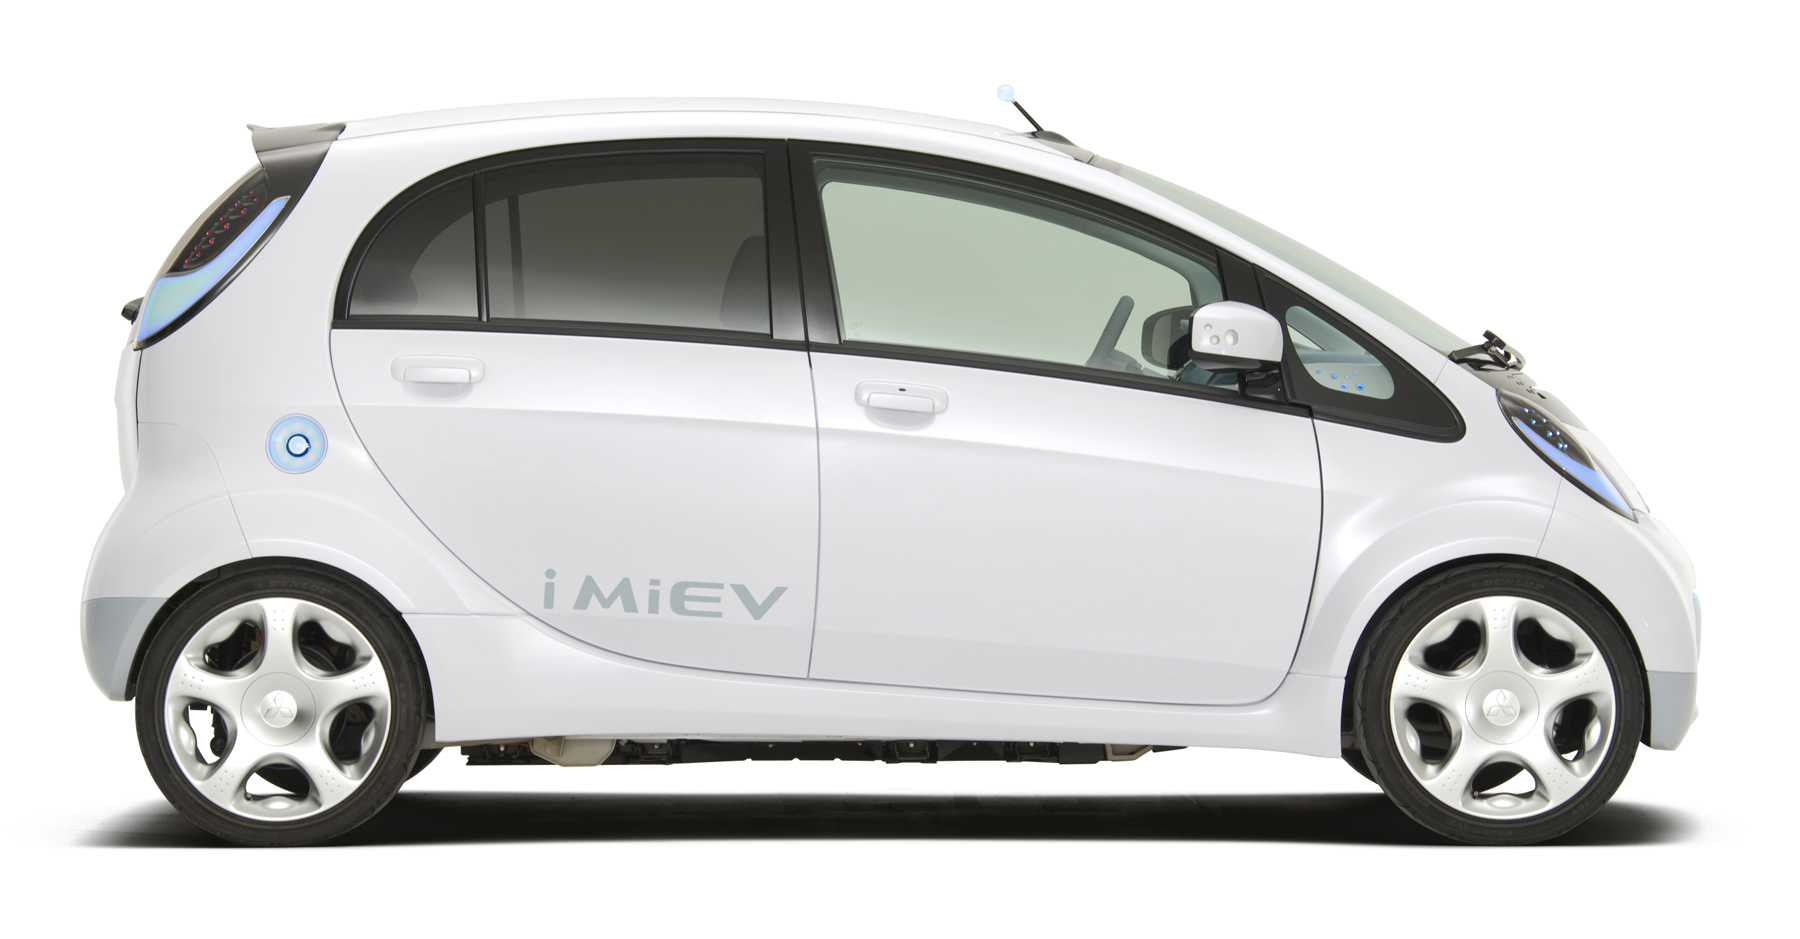 Mitsubishi I Miev Electric Car